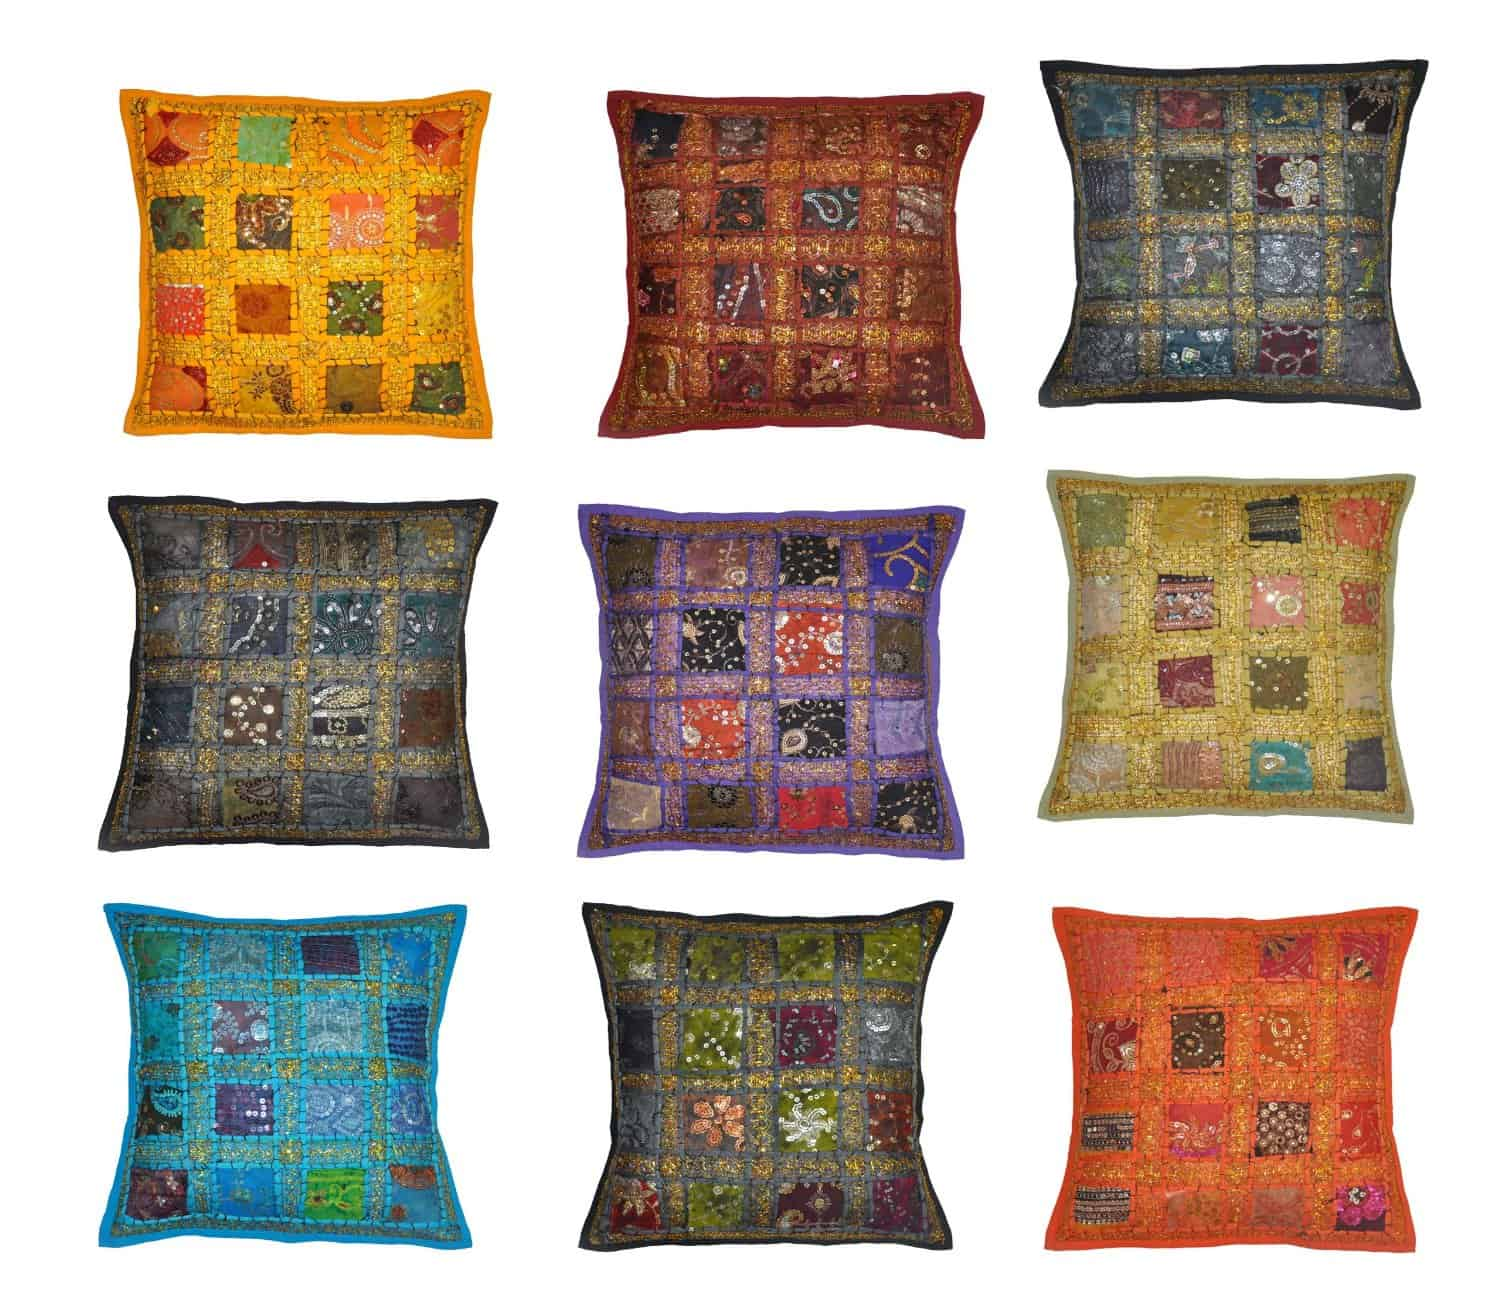 Indian Traditional Handmade Decorative Cushion Covers Patchwork, 16 X 16 Inches (Design #1)